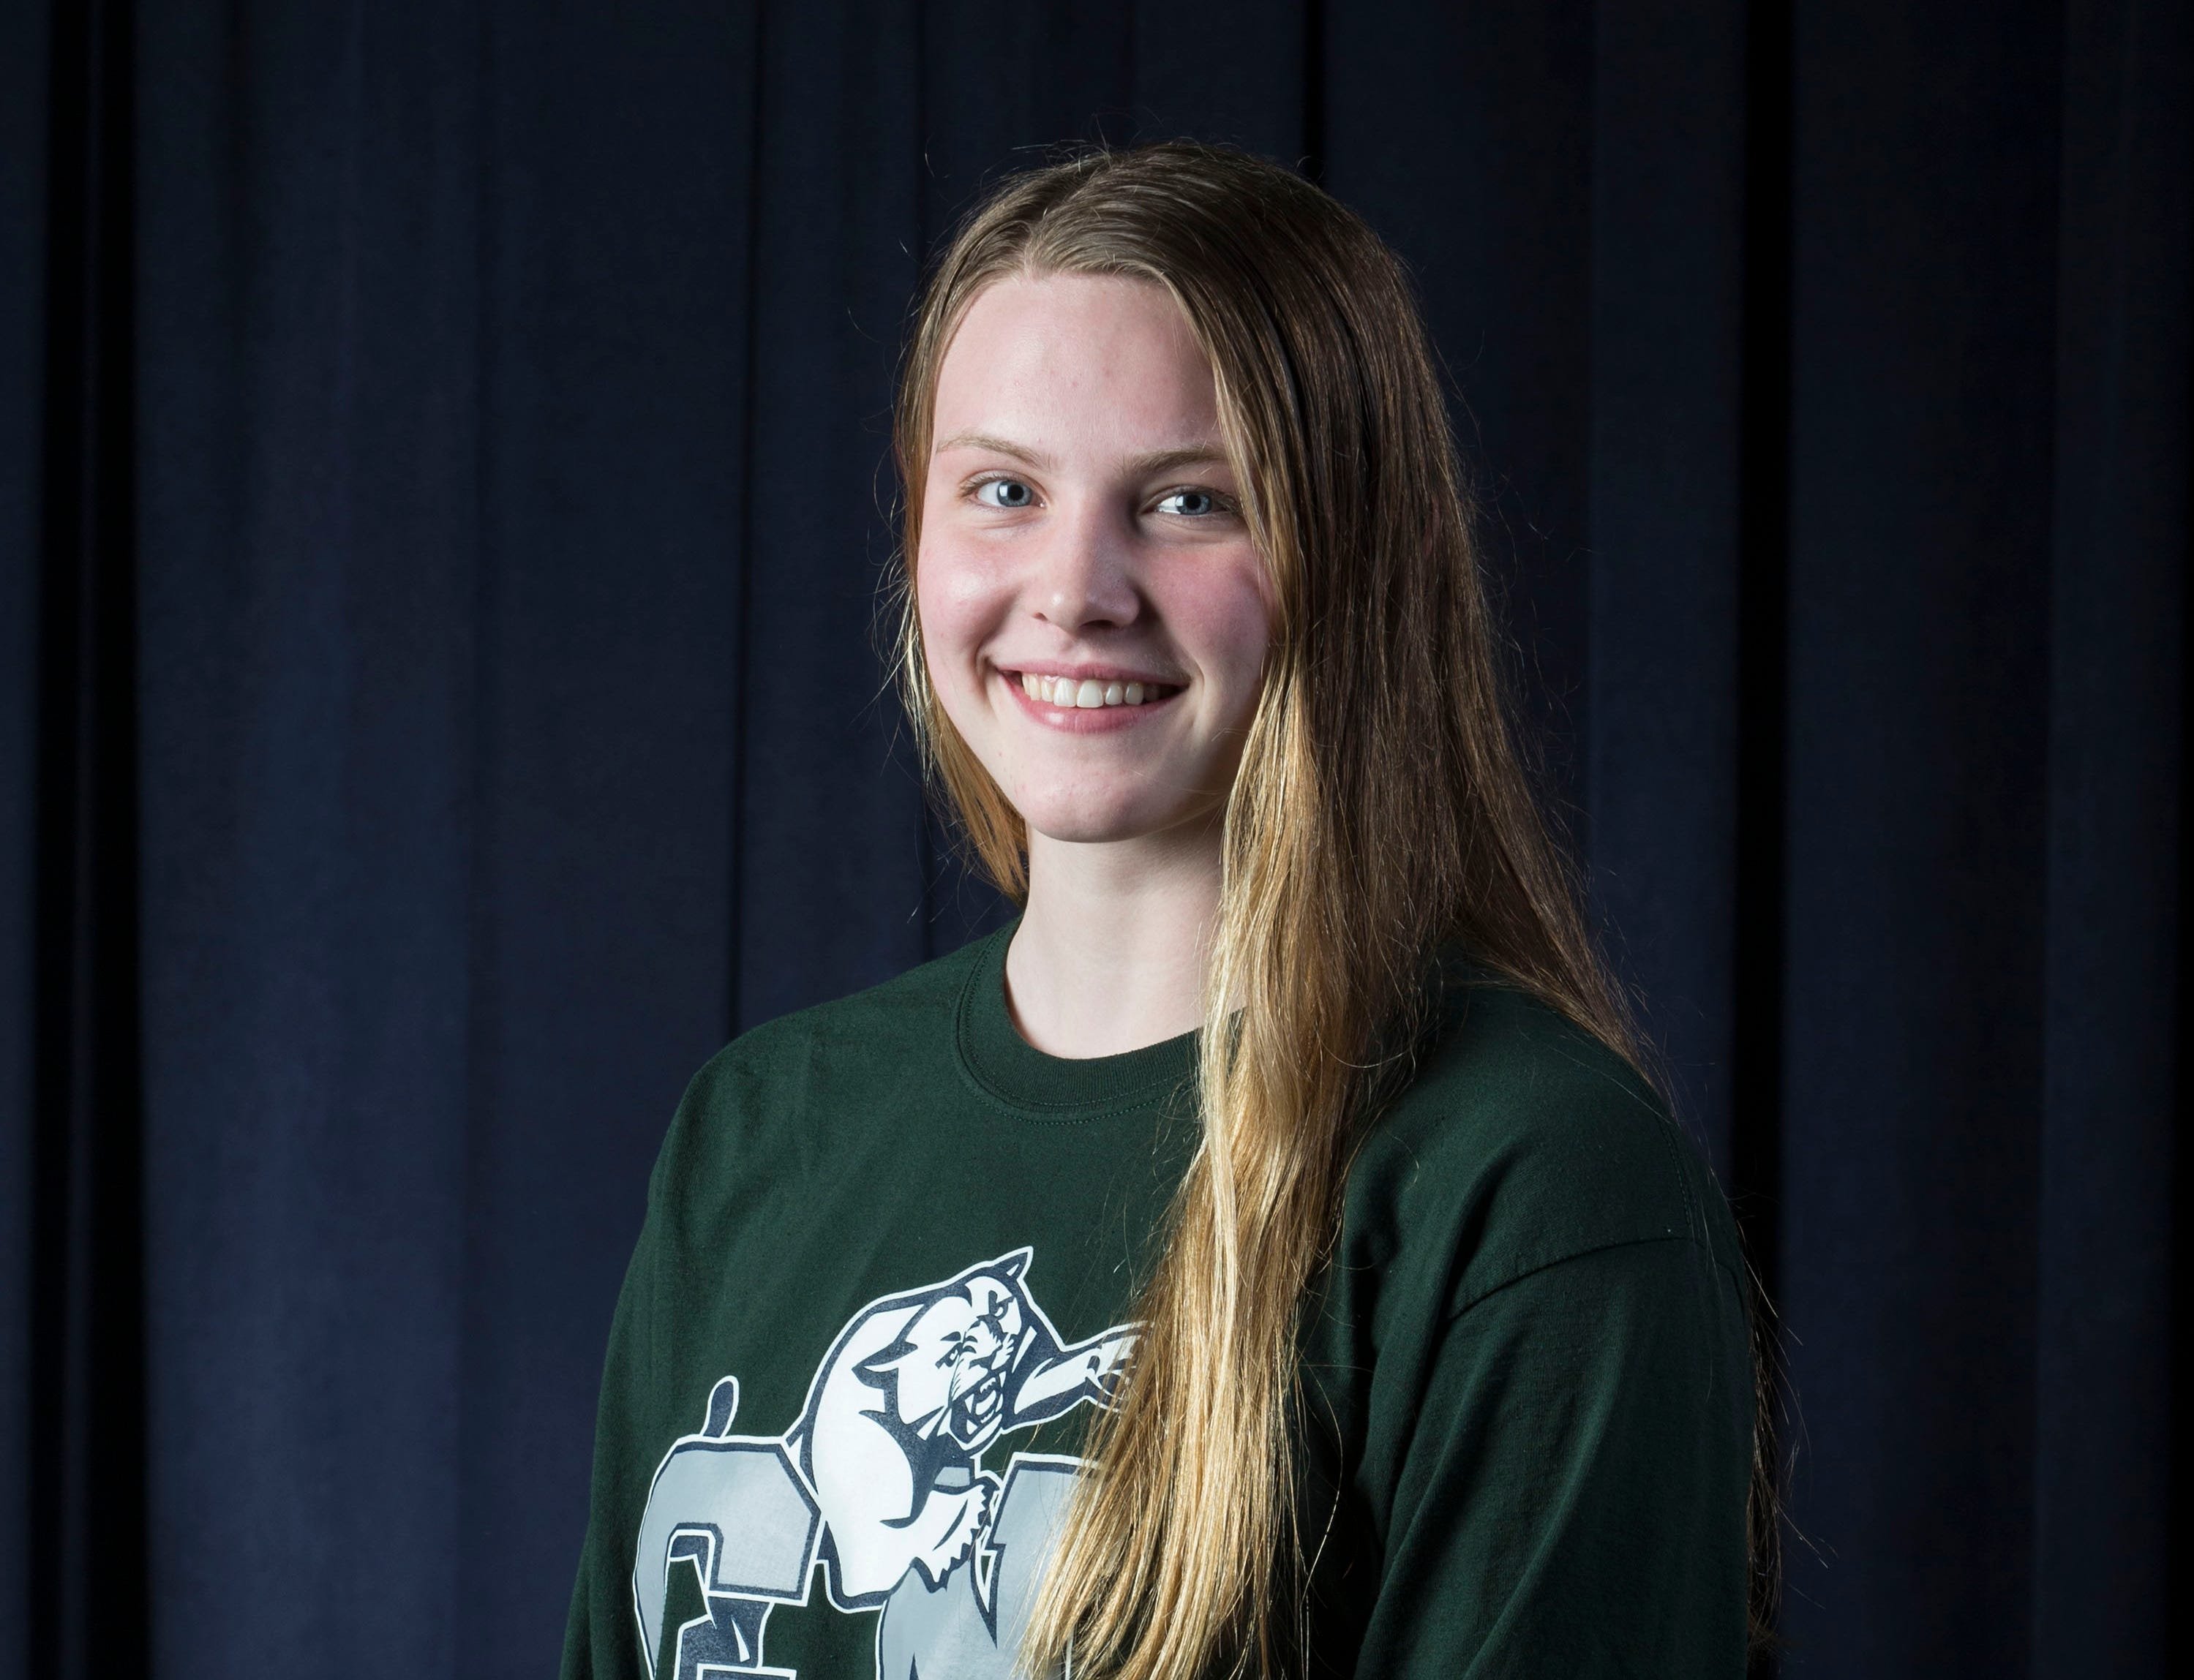 The 2019 All-Shore Girls Swim Team- Megan Judge of Colts Neck